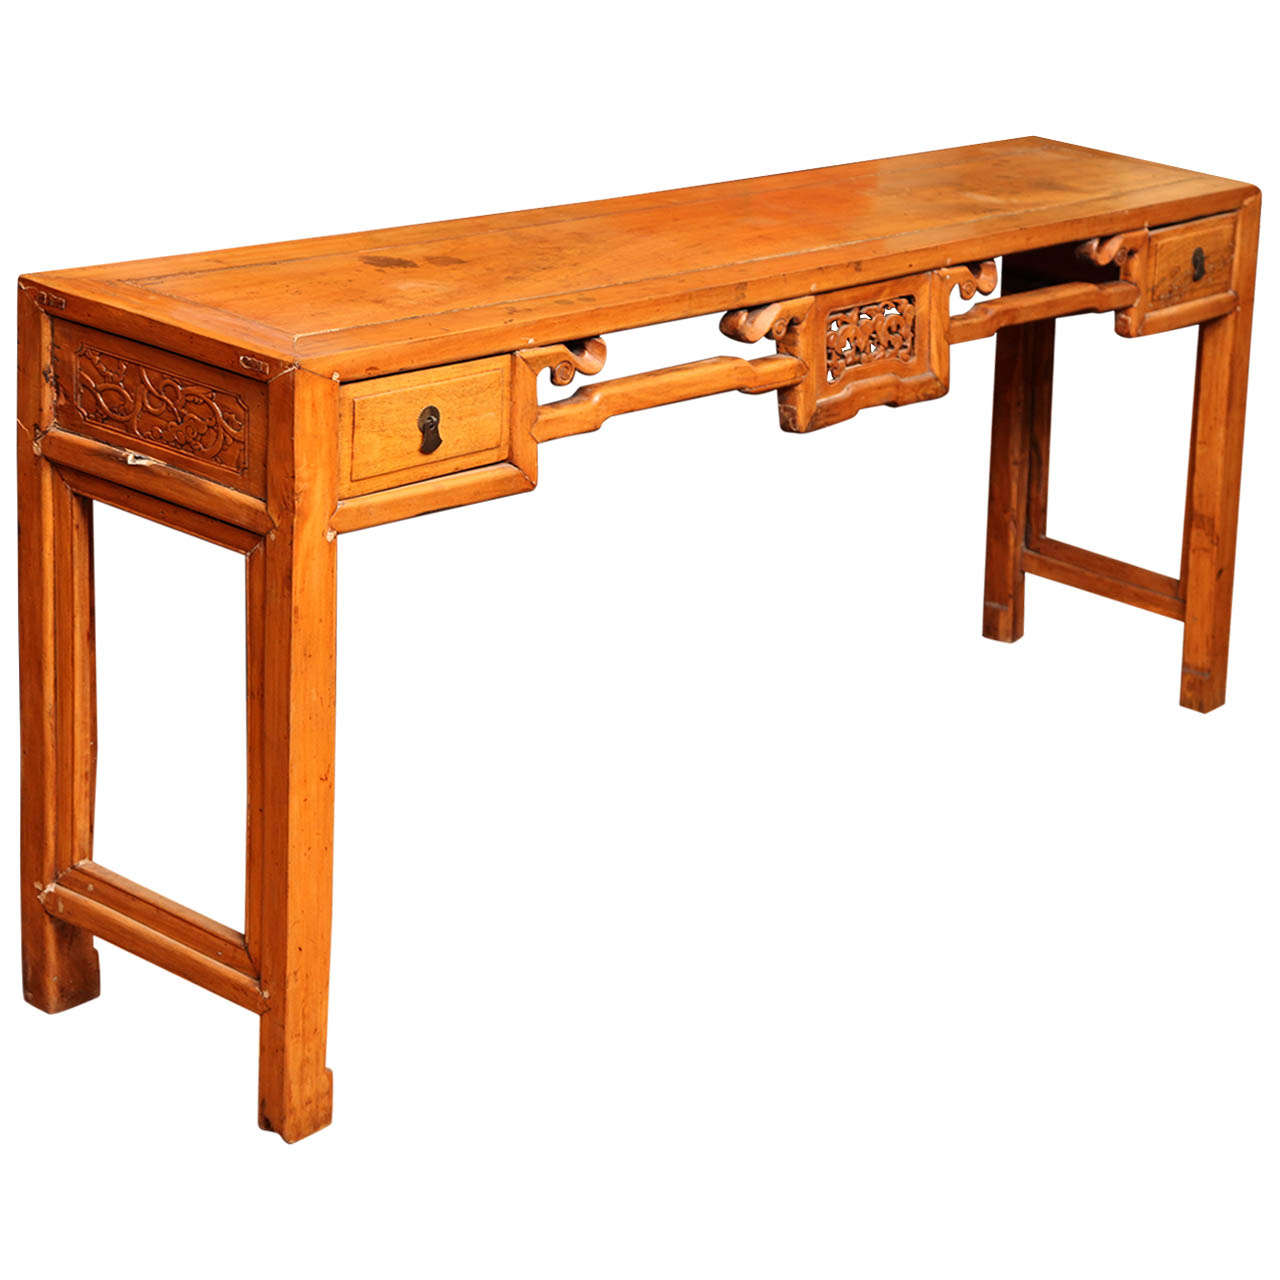 Chinese 19th century natural elm antique console table with chinese 19th century natural elm antique console table with carved decor 1 geotapseo Gallery